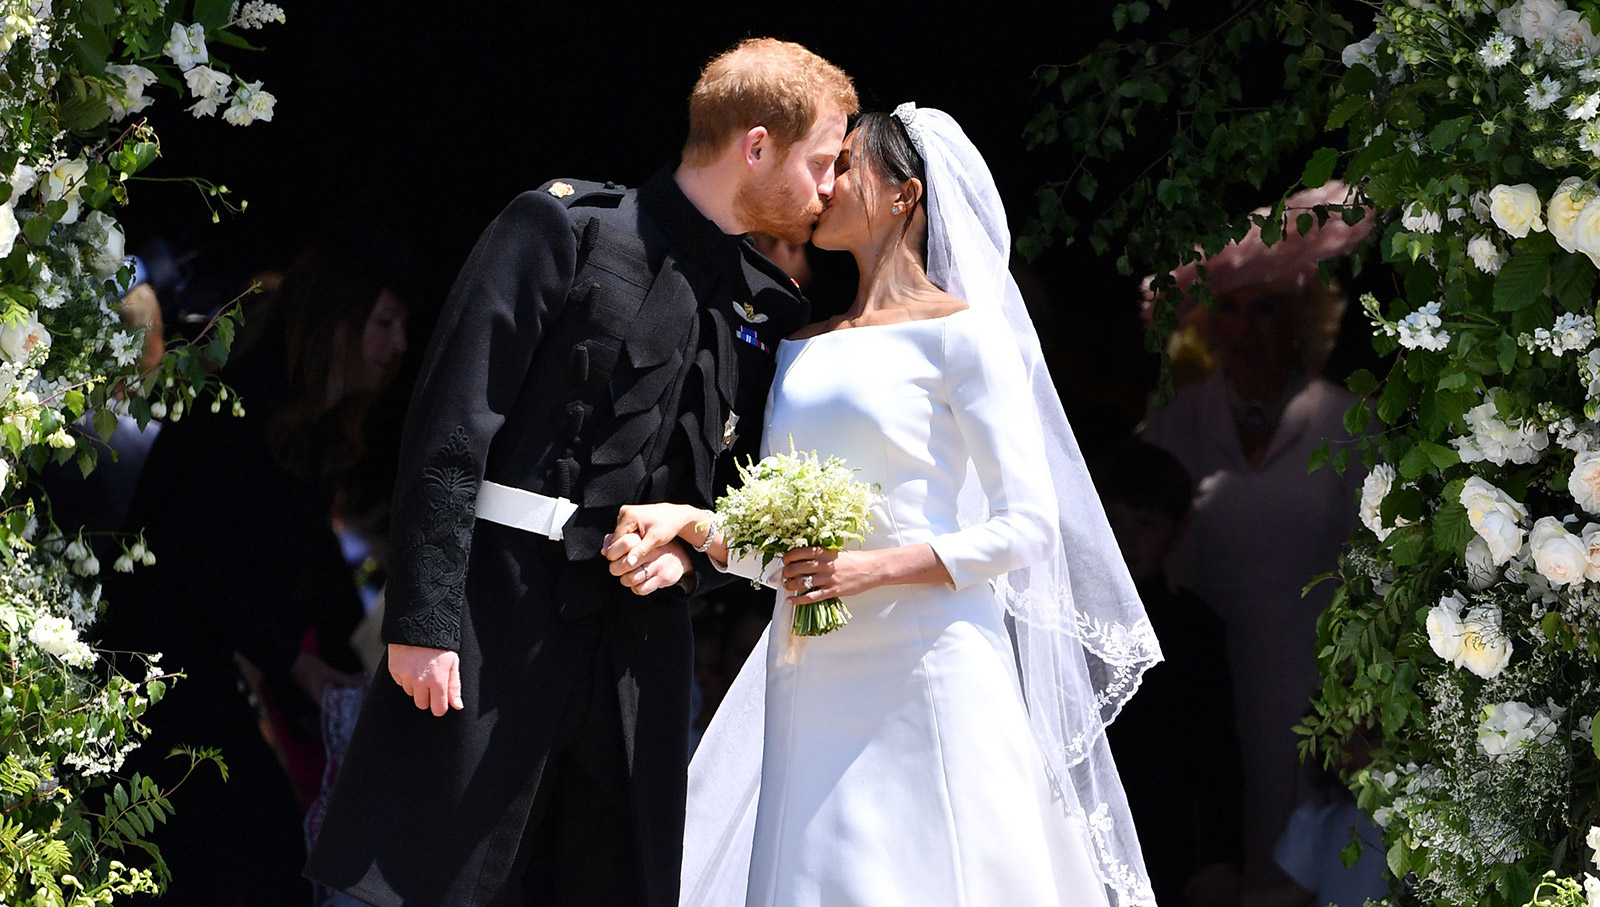 In a union of tradition and modernity, Meghan marries Prince Harry